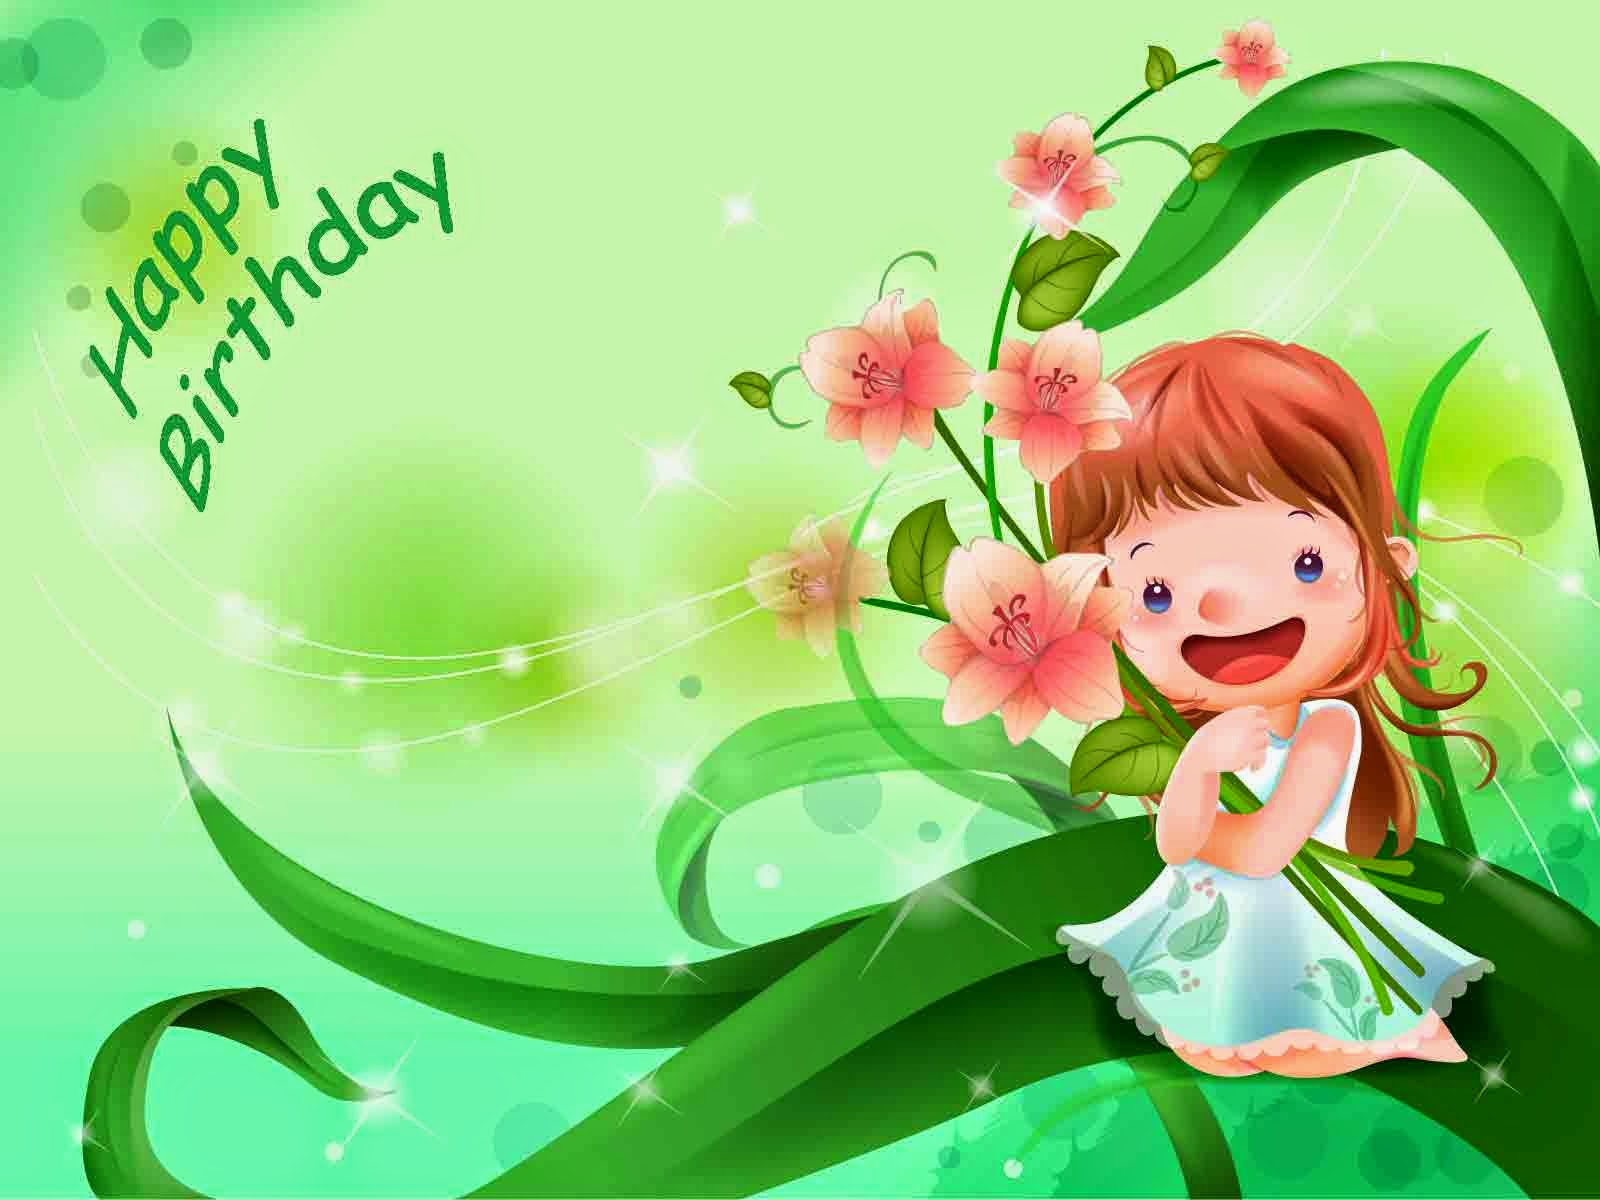 Cute-Happy-Birthday-girl-vector-image-free-download-HD